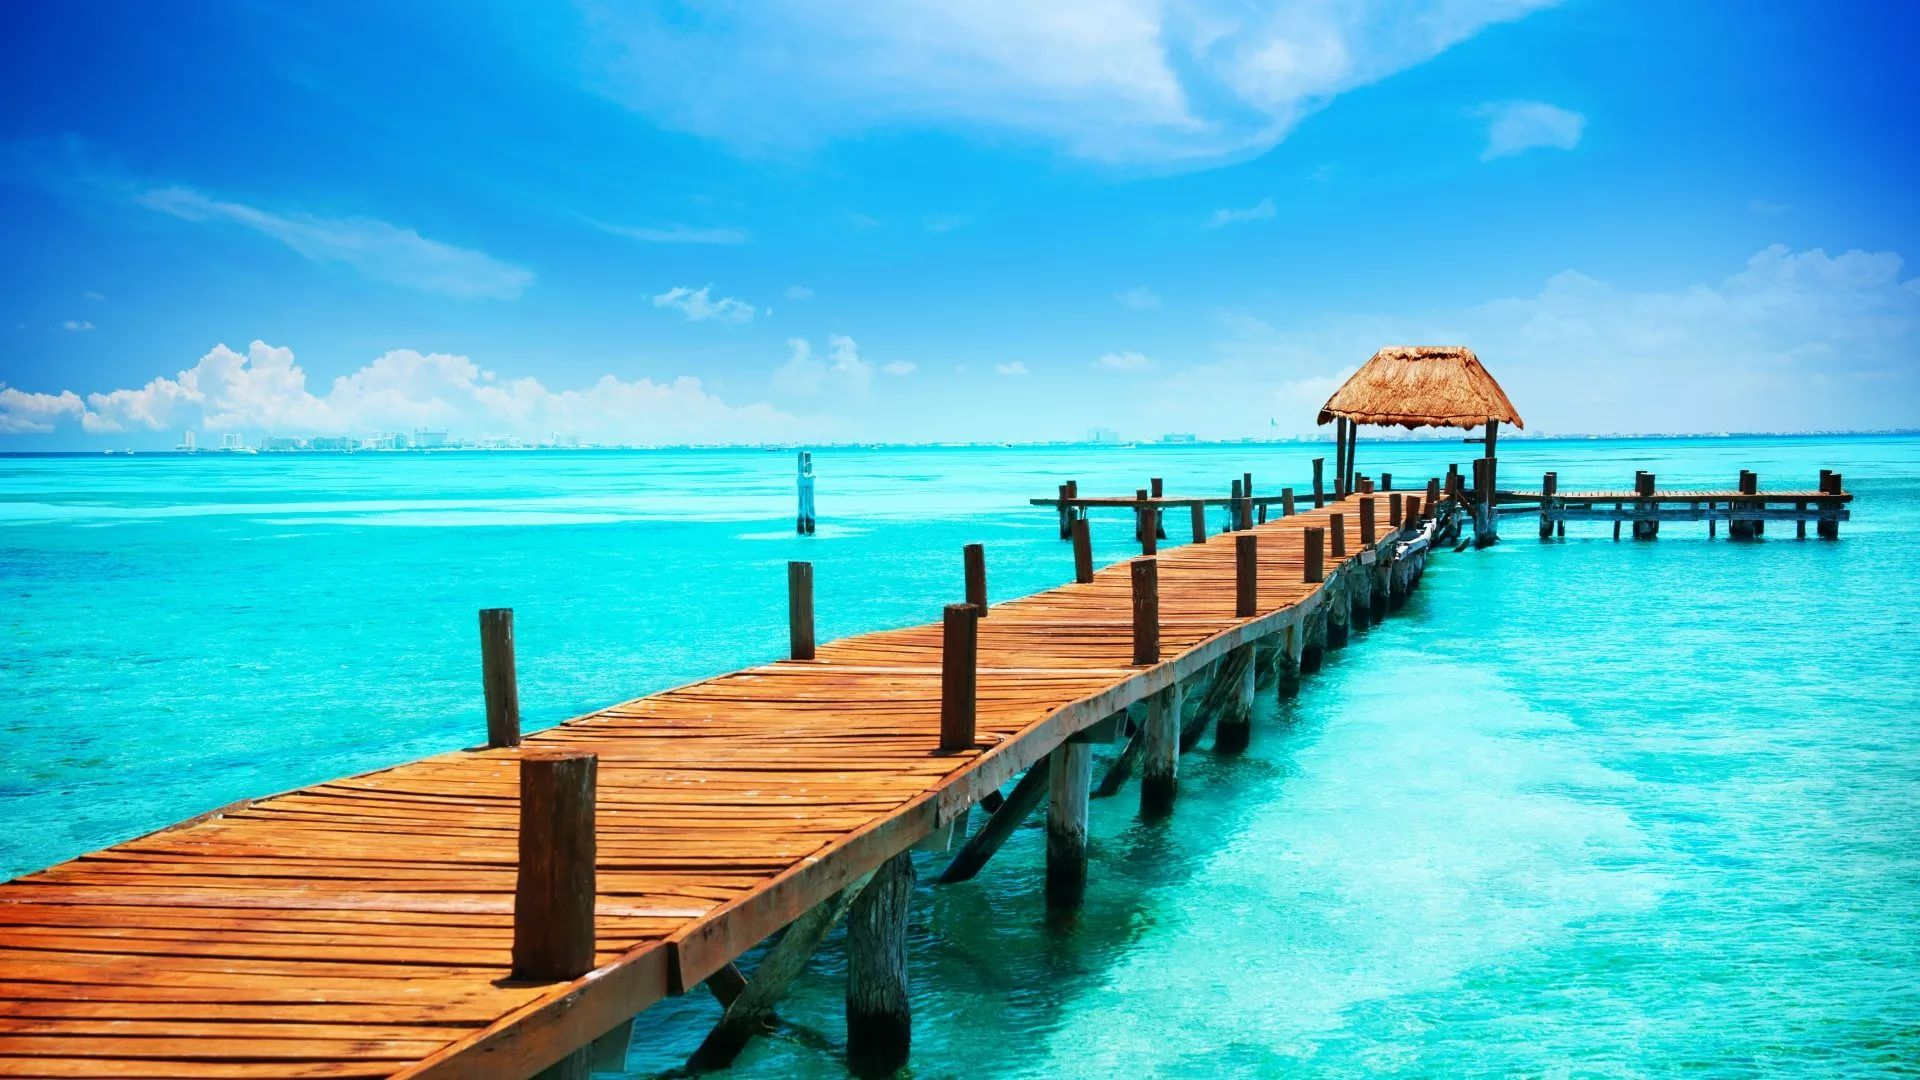 Cancun Mexico wallpaper download